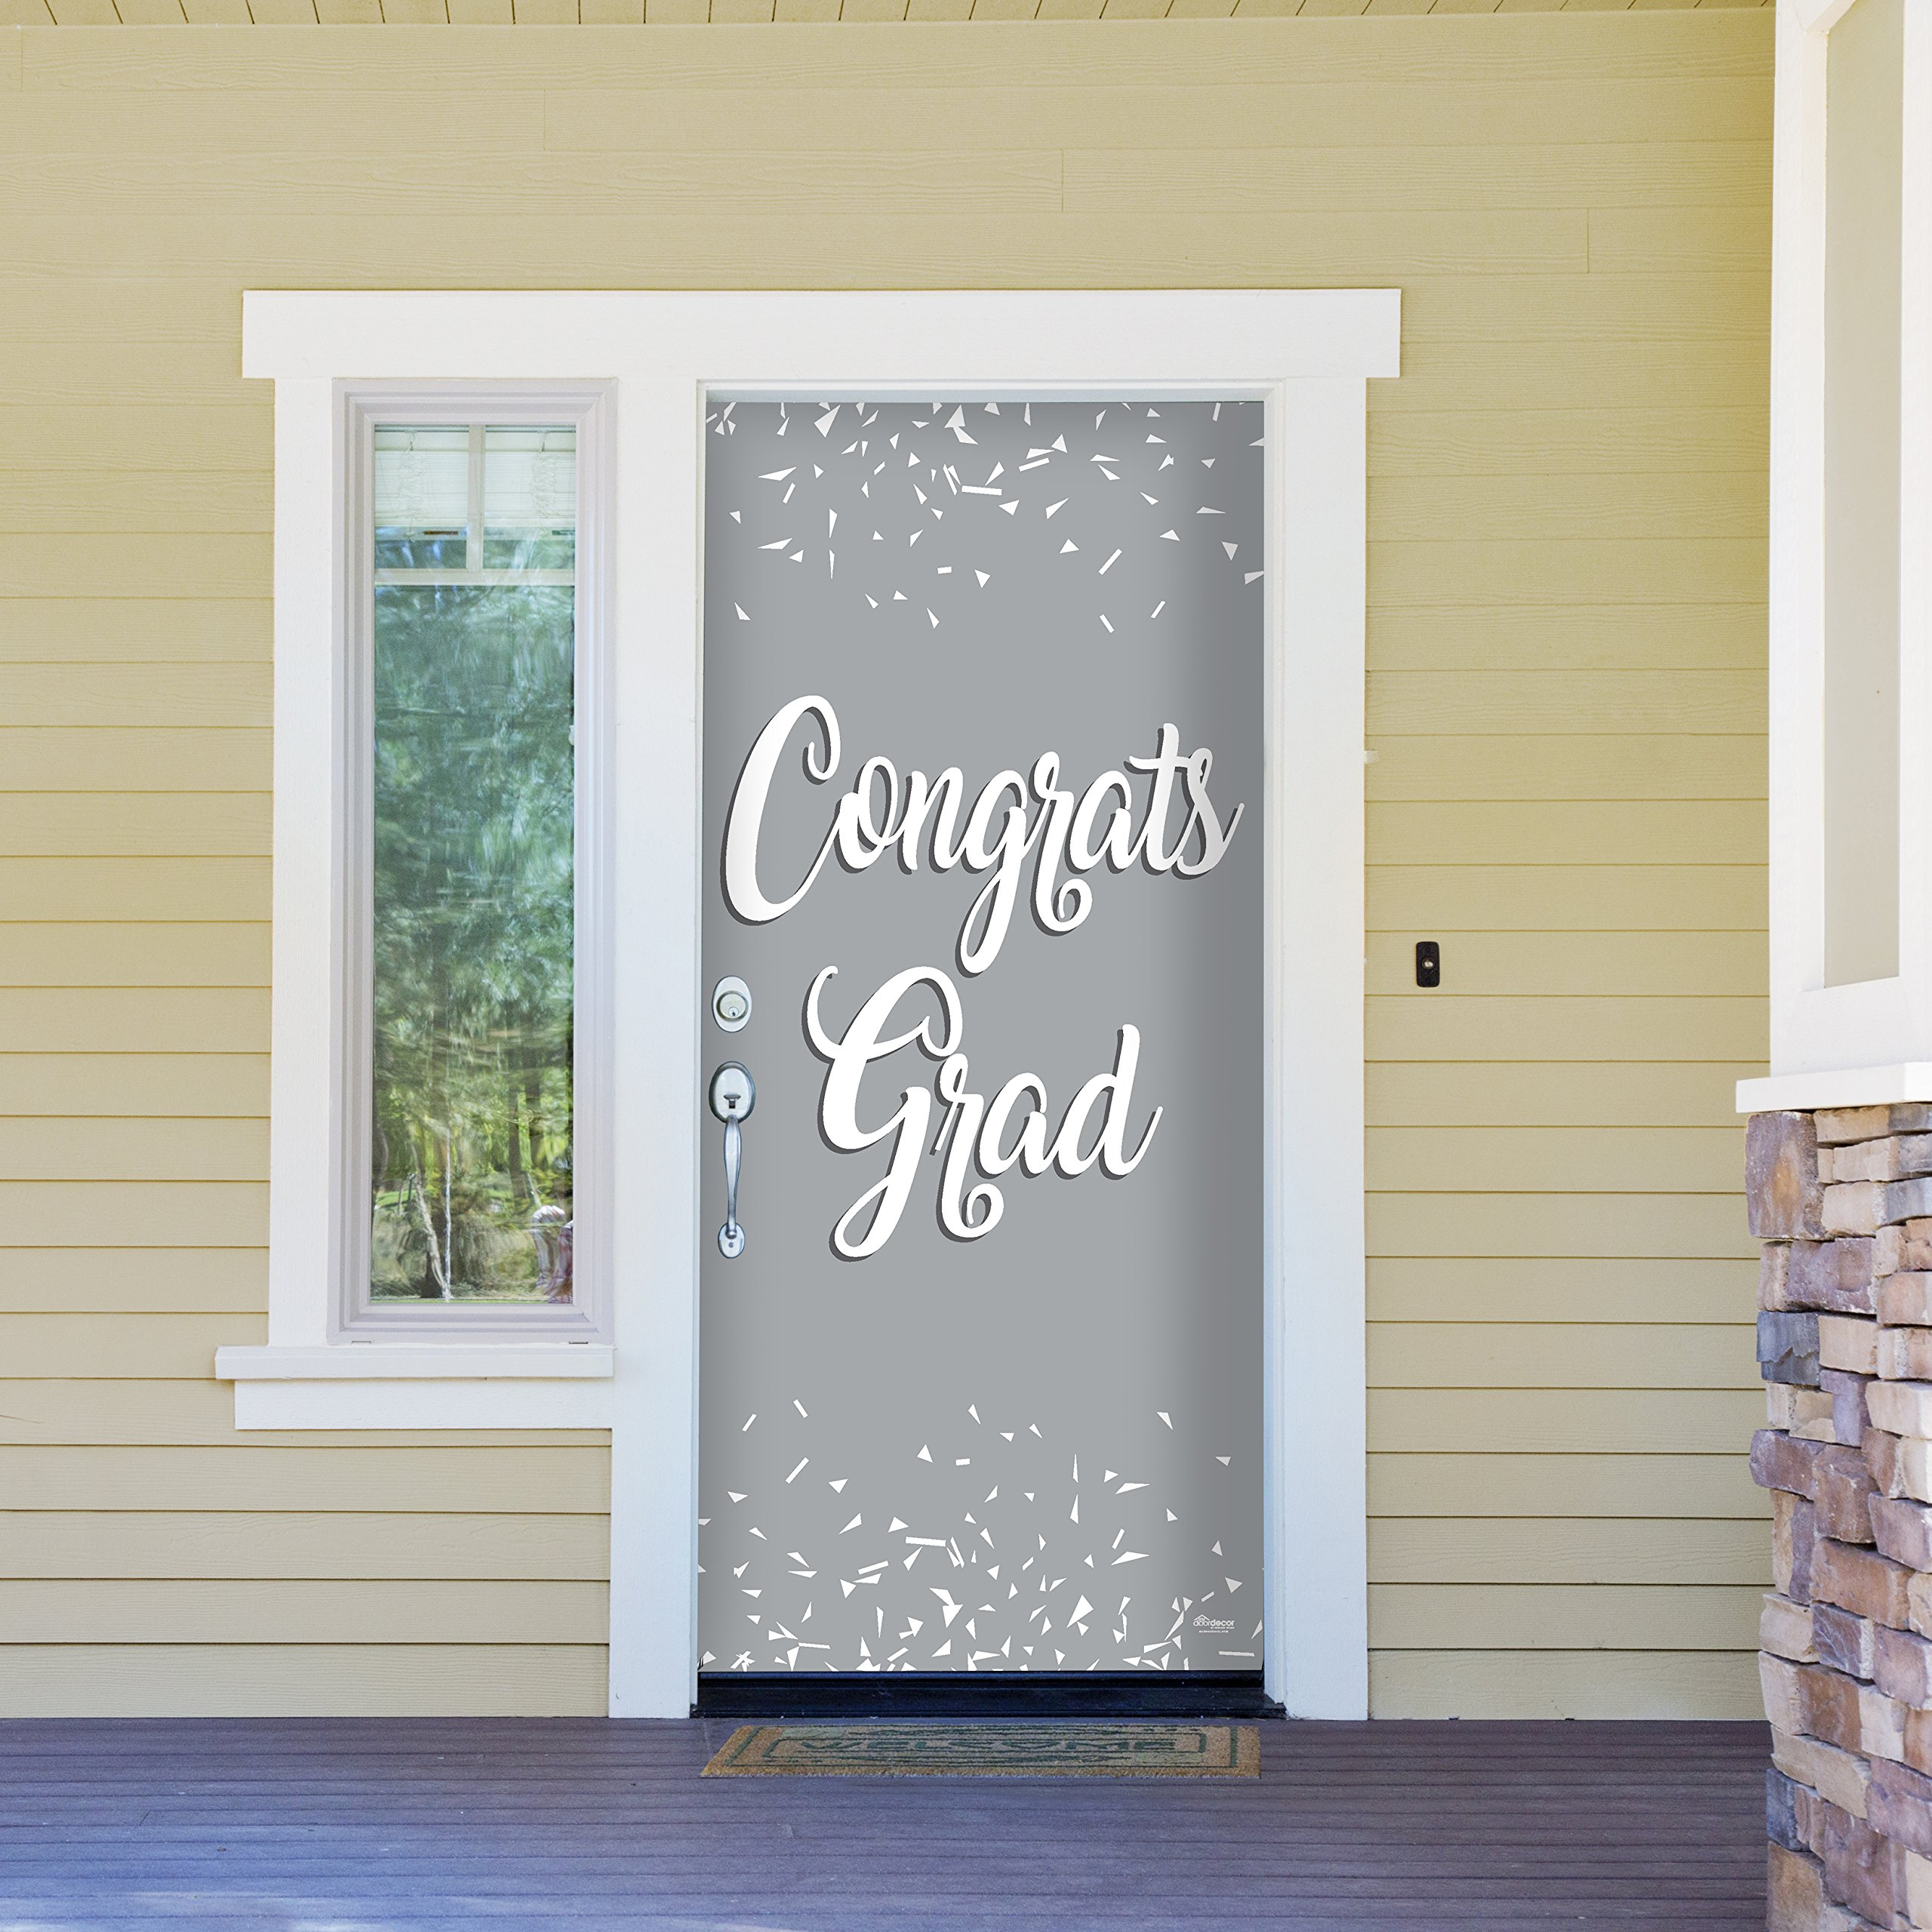 Victory Corps Congrats Grad Grey - Outdoor Graduation Garage Door Banner Mural Sign Décor 36'' x 80'' One Size Fits All Front Door Car Garage - The Original Holiday Front Door Banner Decor